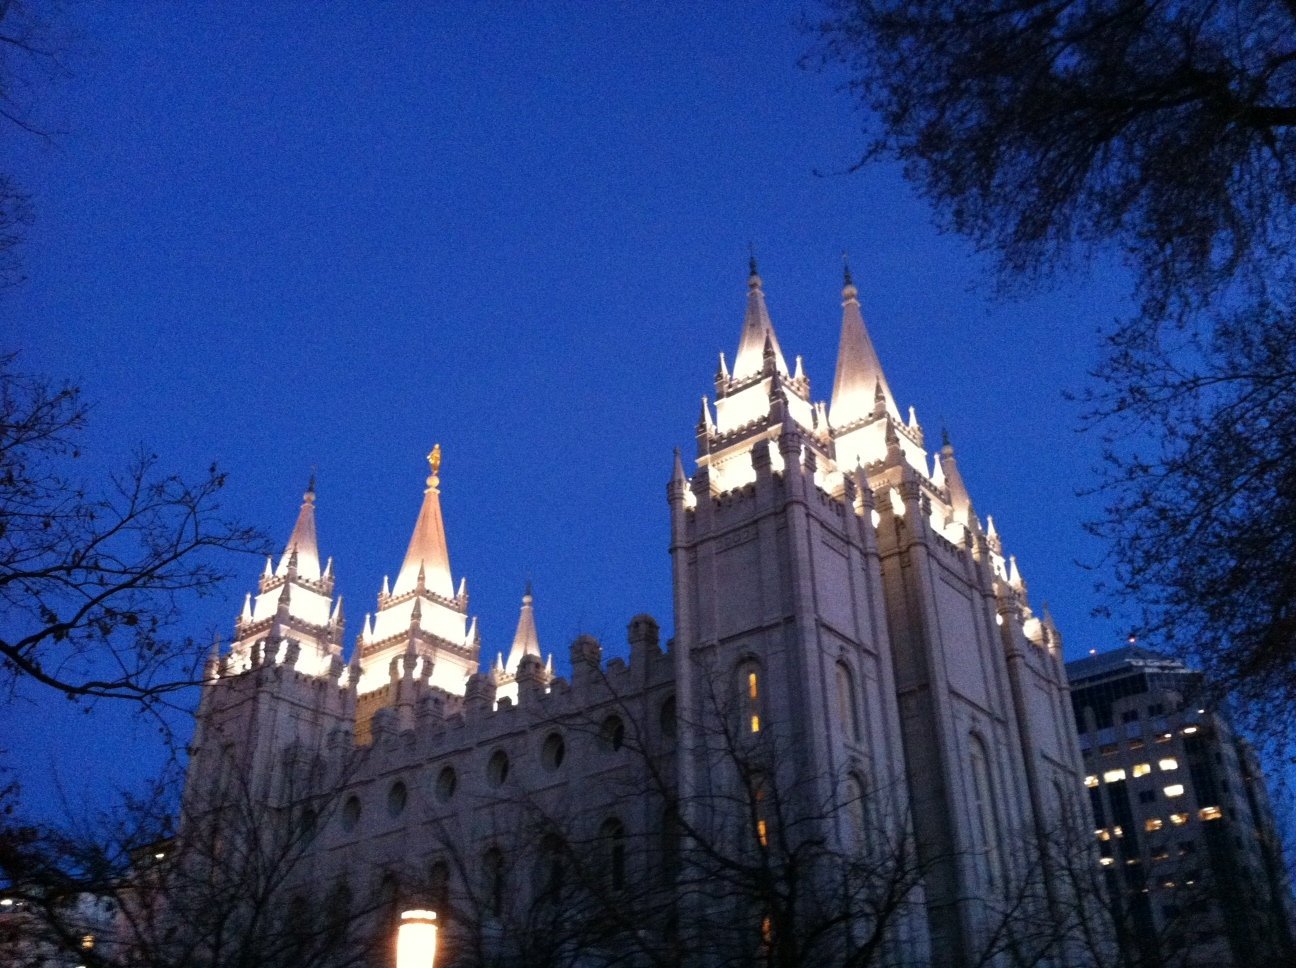 The Salt Lake Temple makes a dramatic almost heavenly - some might say Disney-esque - statement at night.